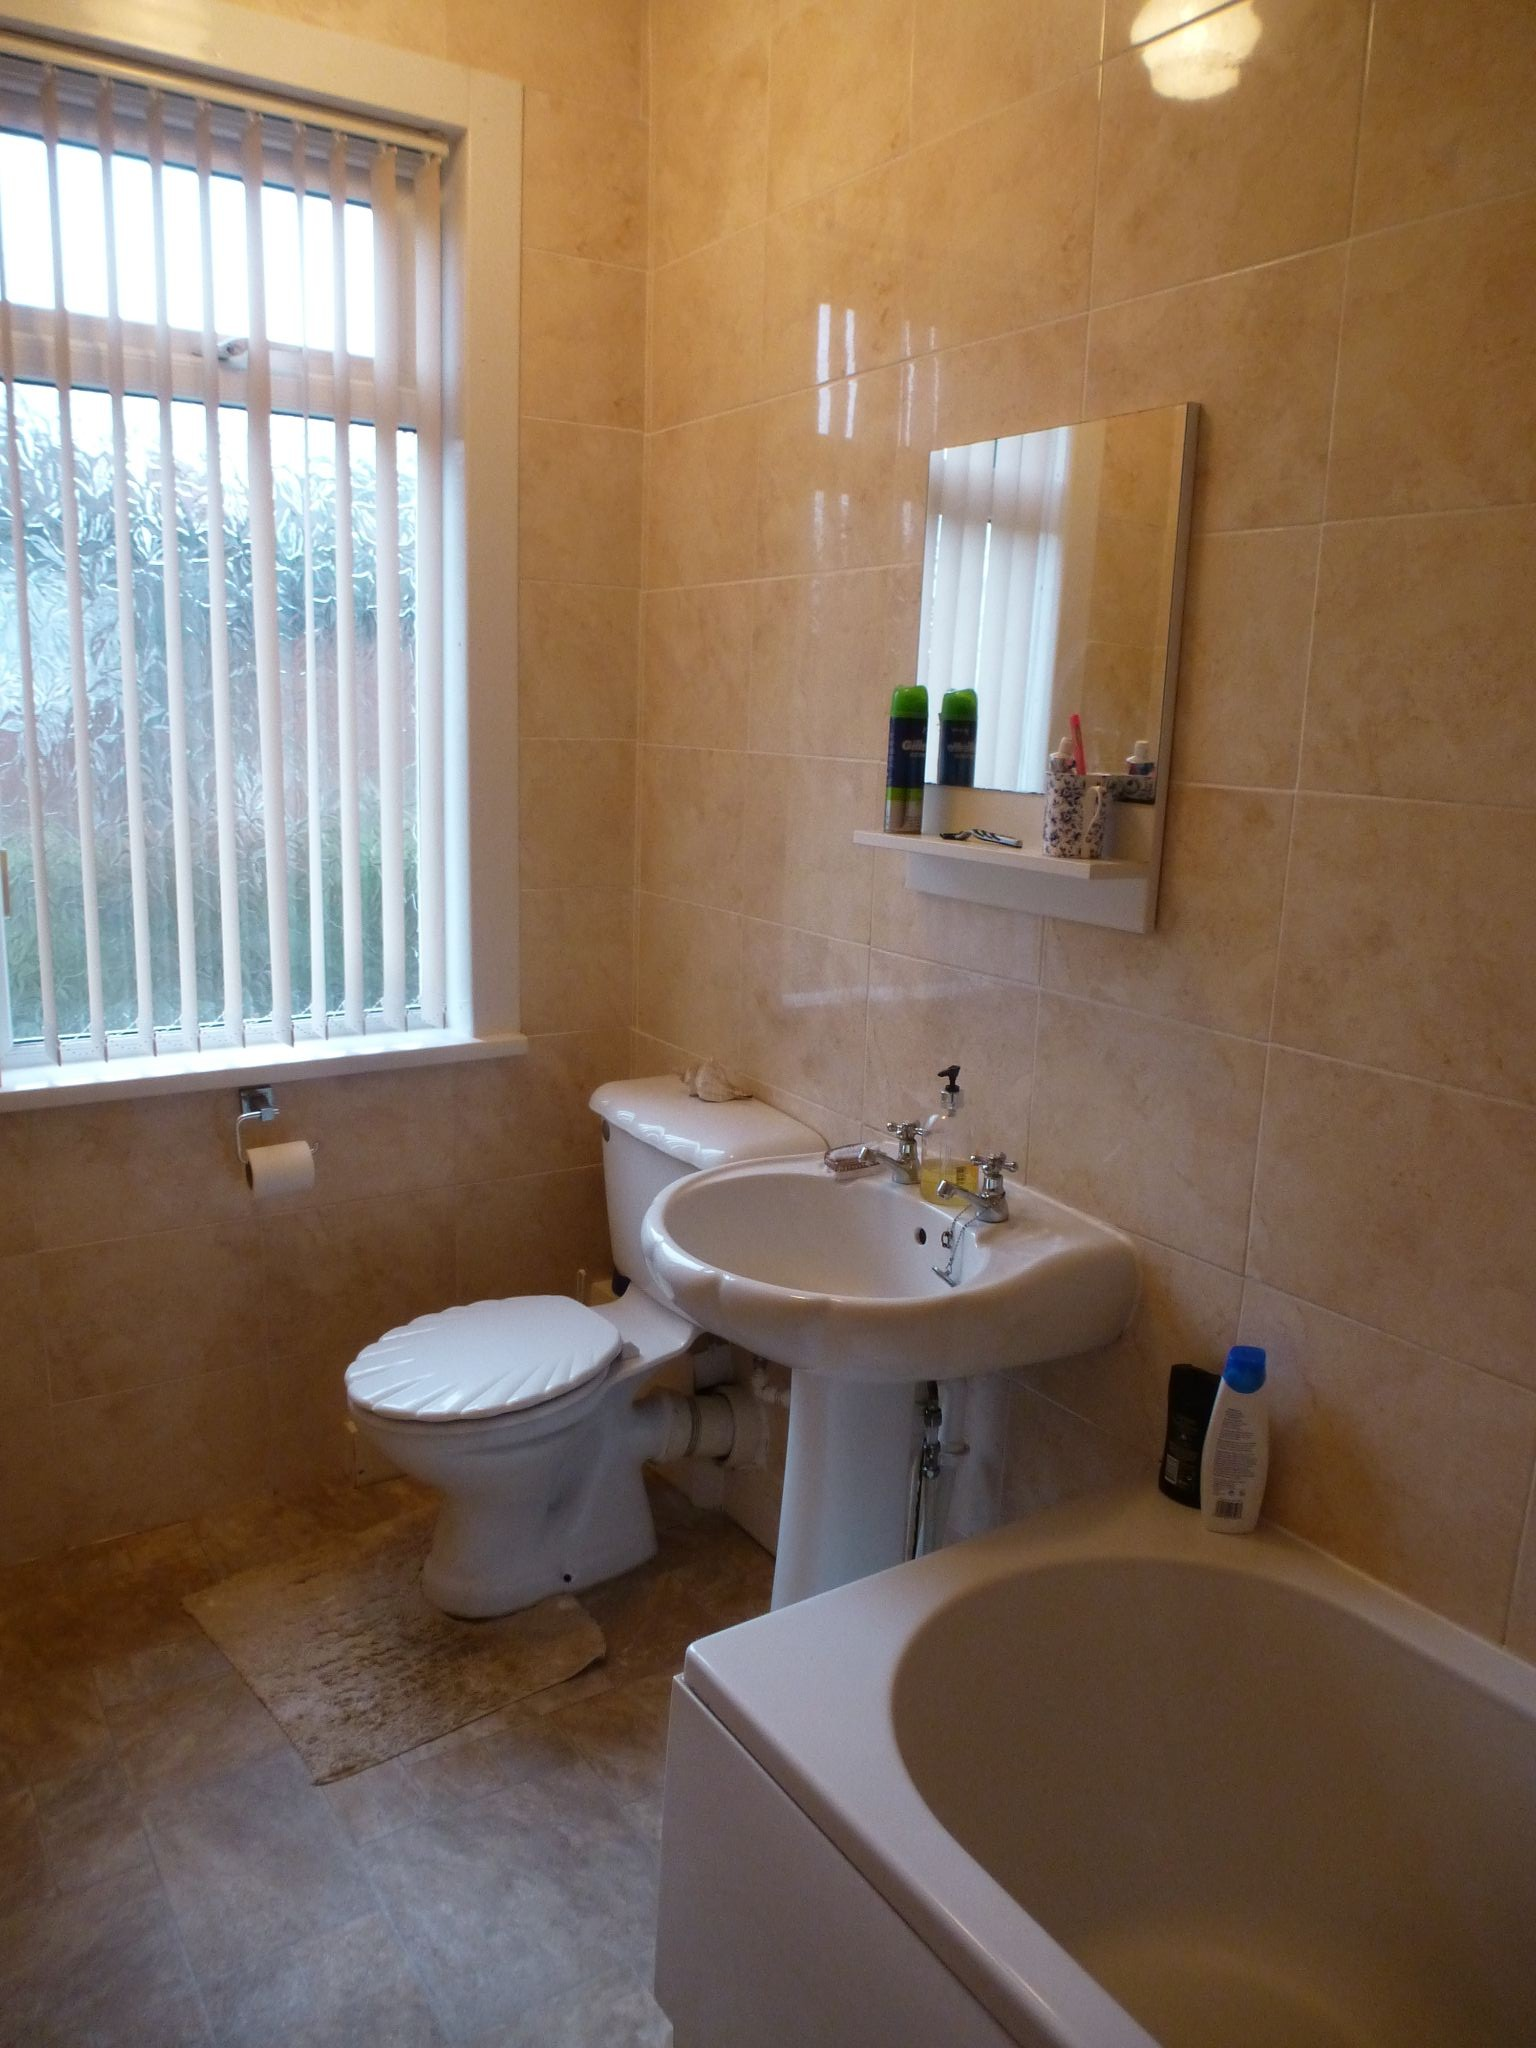 Image 1 of 3 of BATHROOM, on Accommodation Comprising for